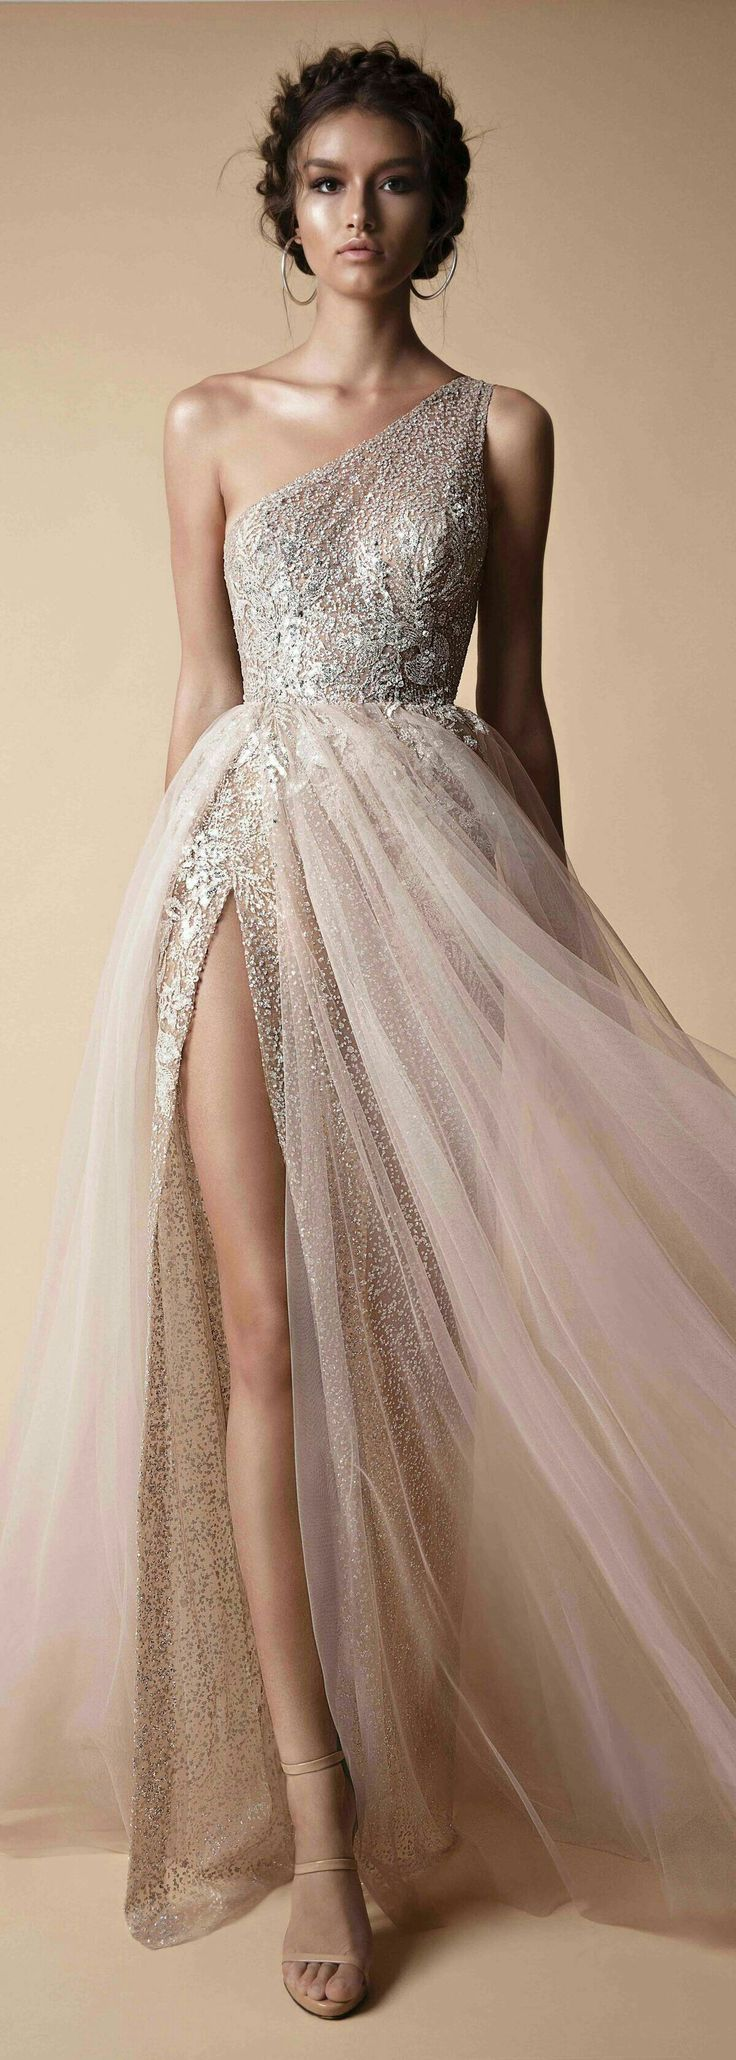 best formal dressesgowns images on pinterest